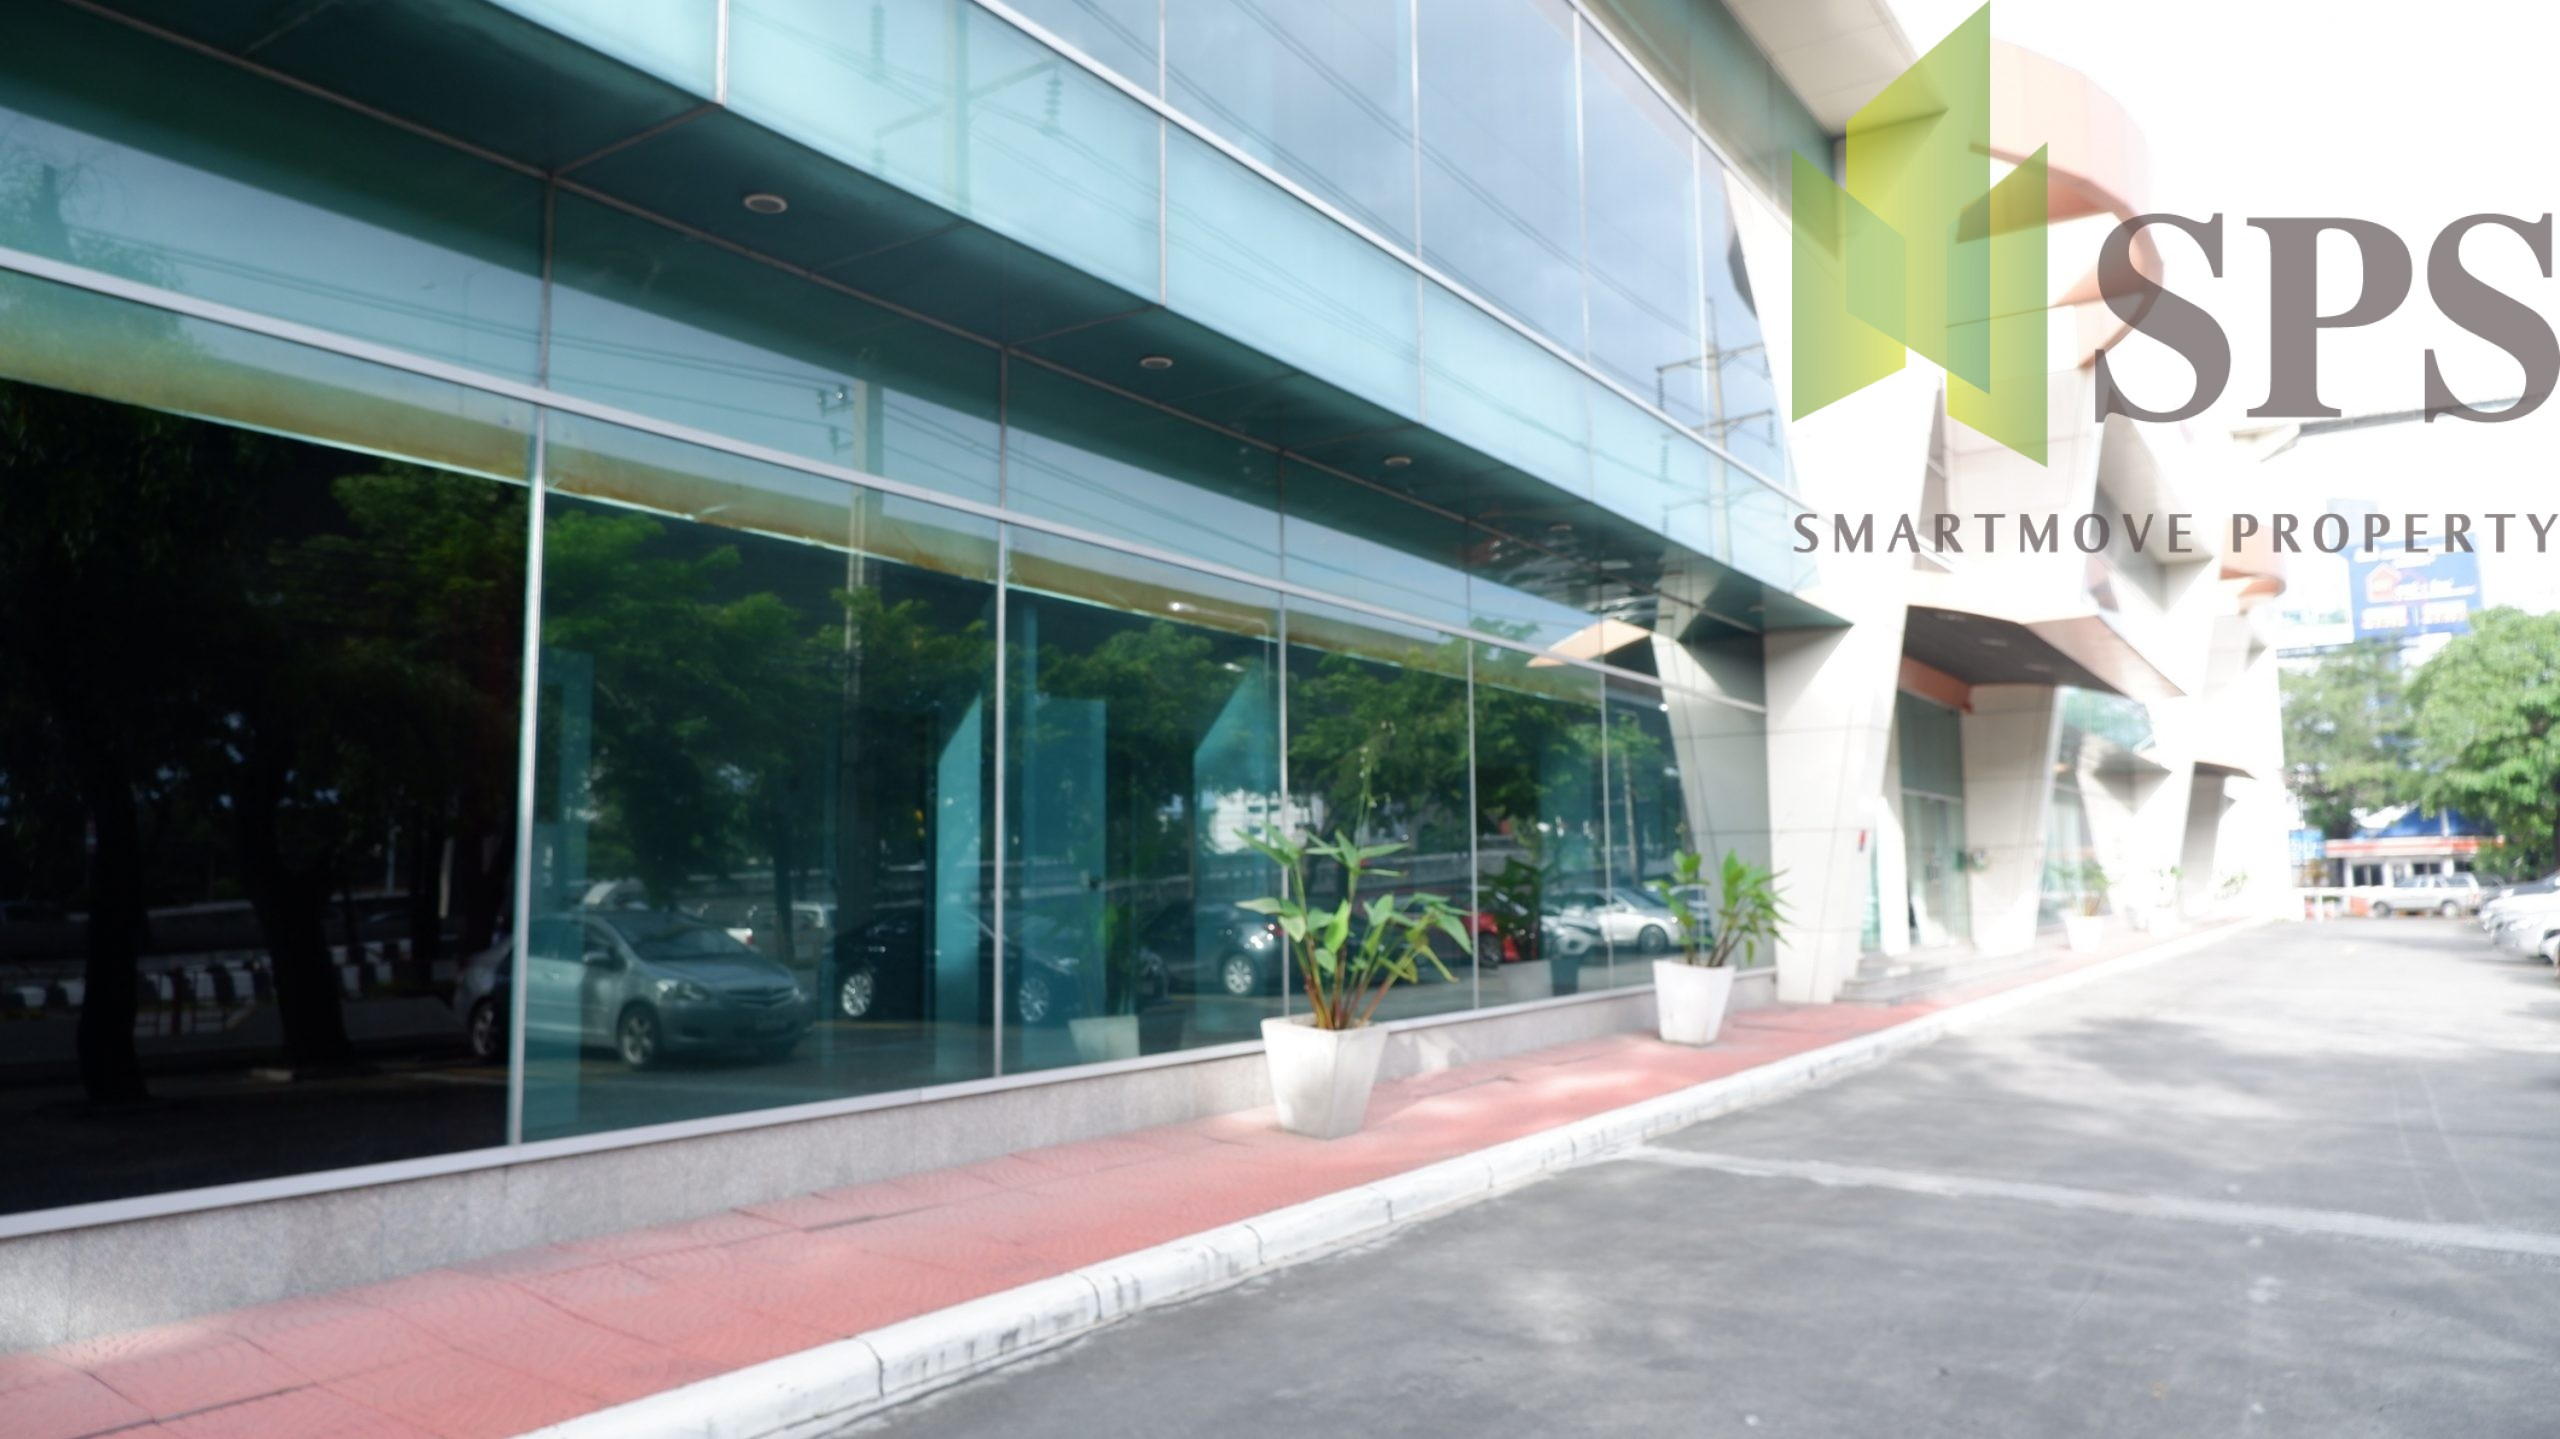 Showroom/Office For Rent at Debaratana KM.1 (Property ID: SPS-PP300)